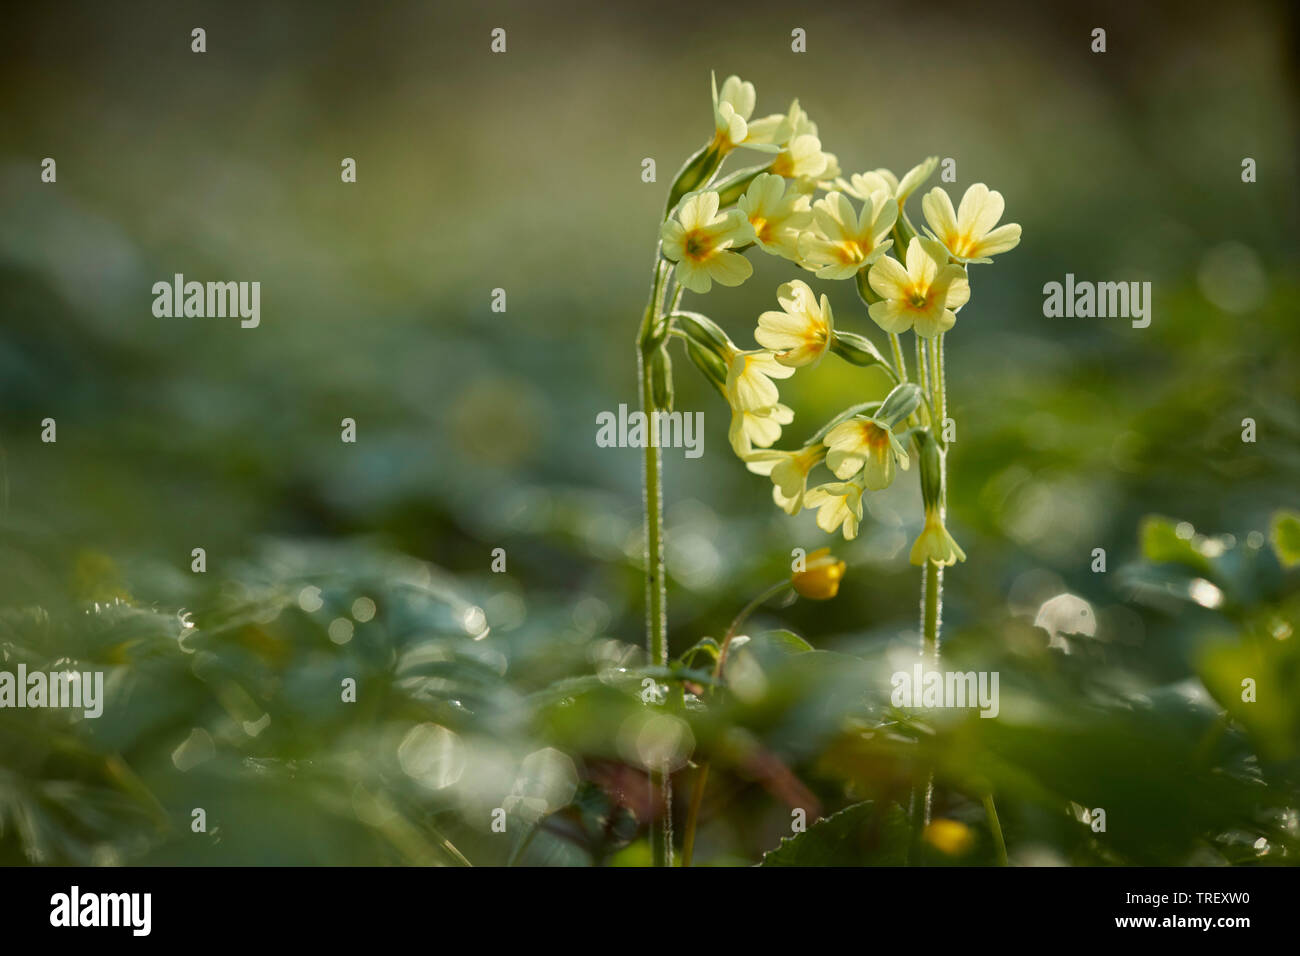 Common Cowslip (Primula veris), flowering plant in backlight. Germany Stock Photo